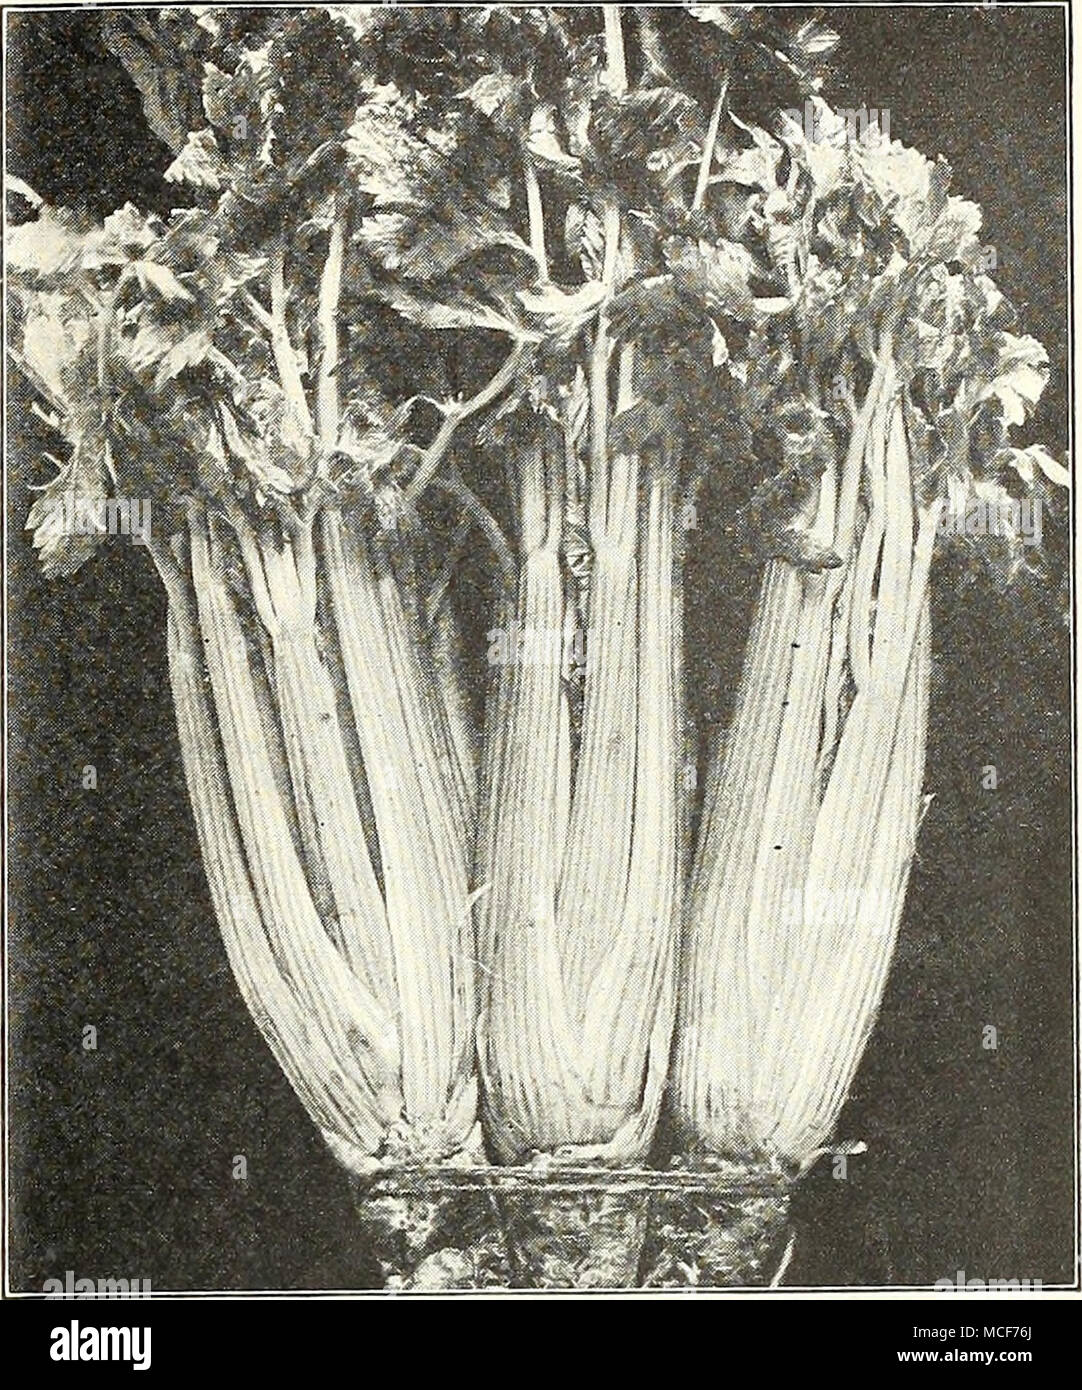 Cultivation of stalked celery in the open field: methods and recommendations for the care 77